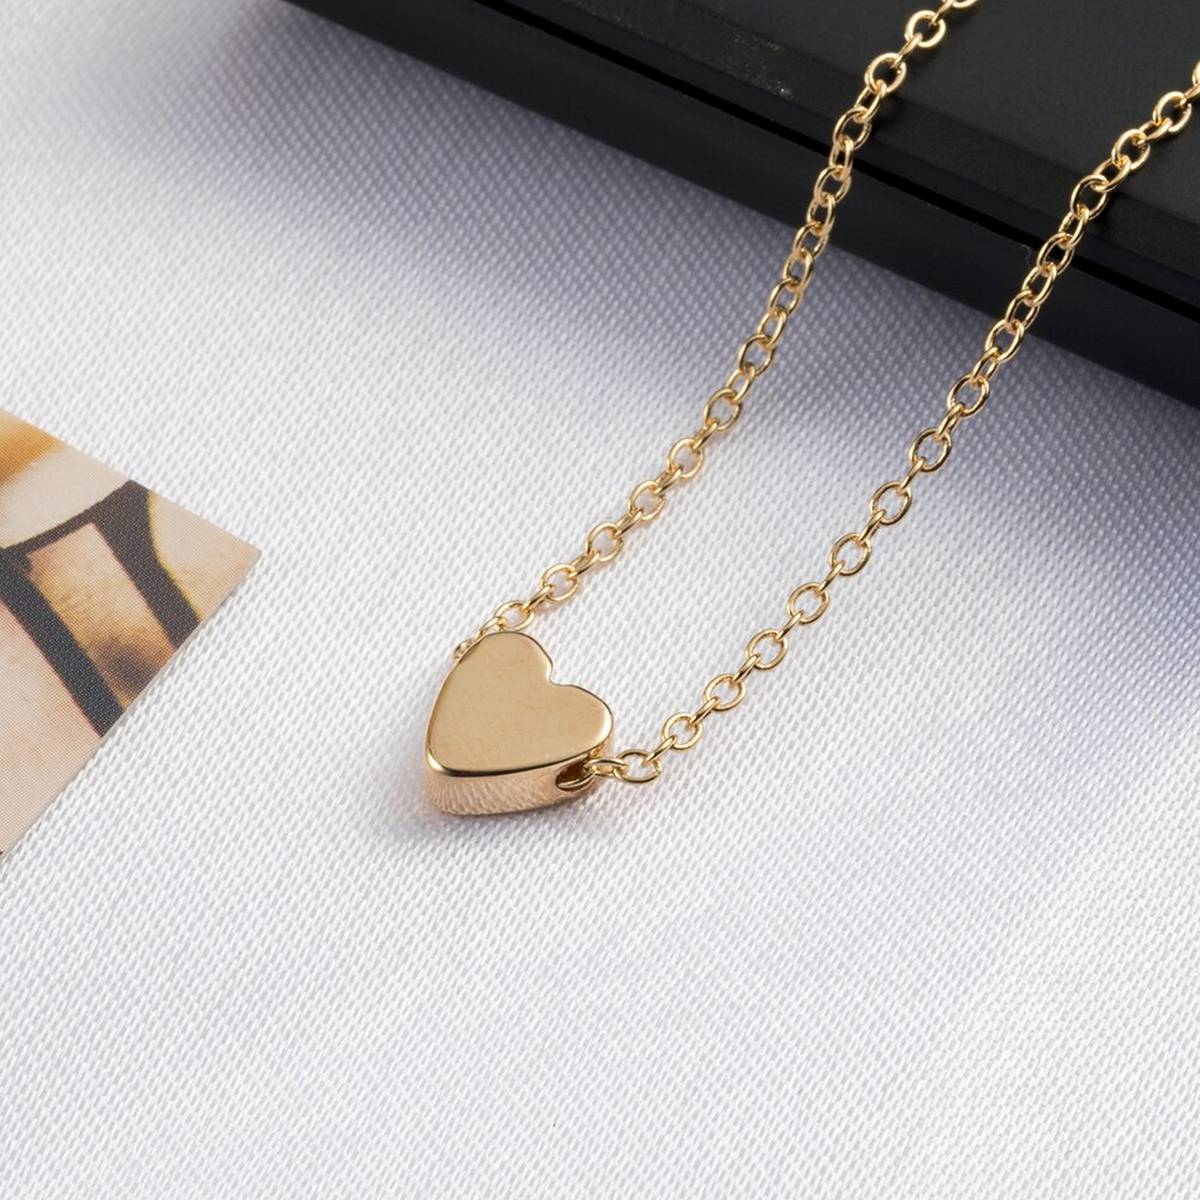 World Wide Premium Quality Stainless Steal Heart Shape Pendant Chain Necklace For Women